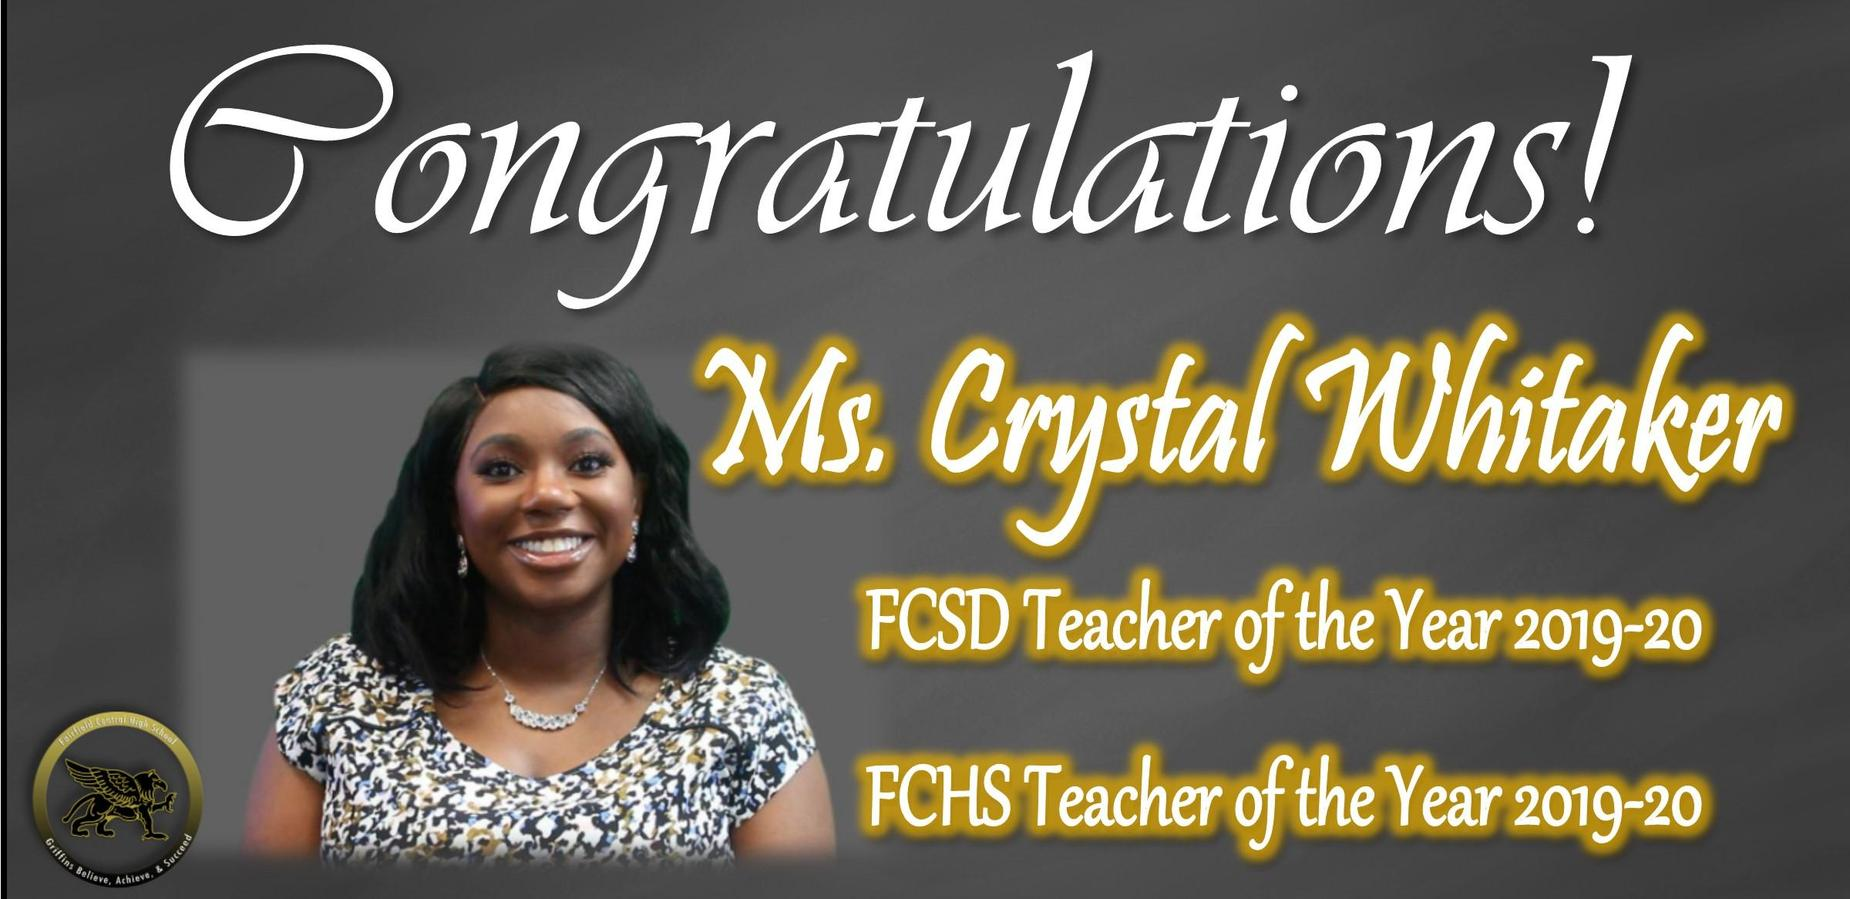 Congratulations! Crystal Whitaker FCSD TOY 2019-20 FCHS TOY 2019-20